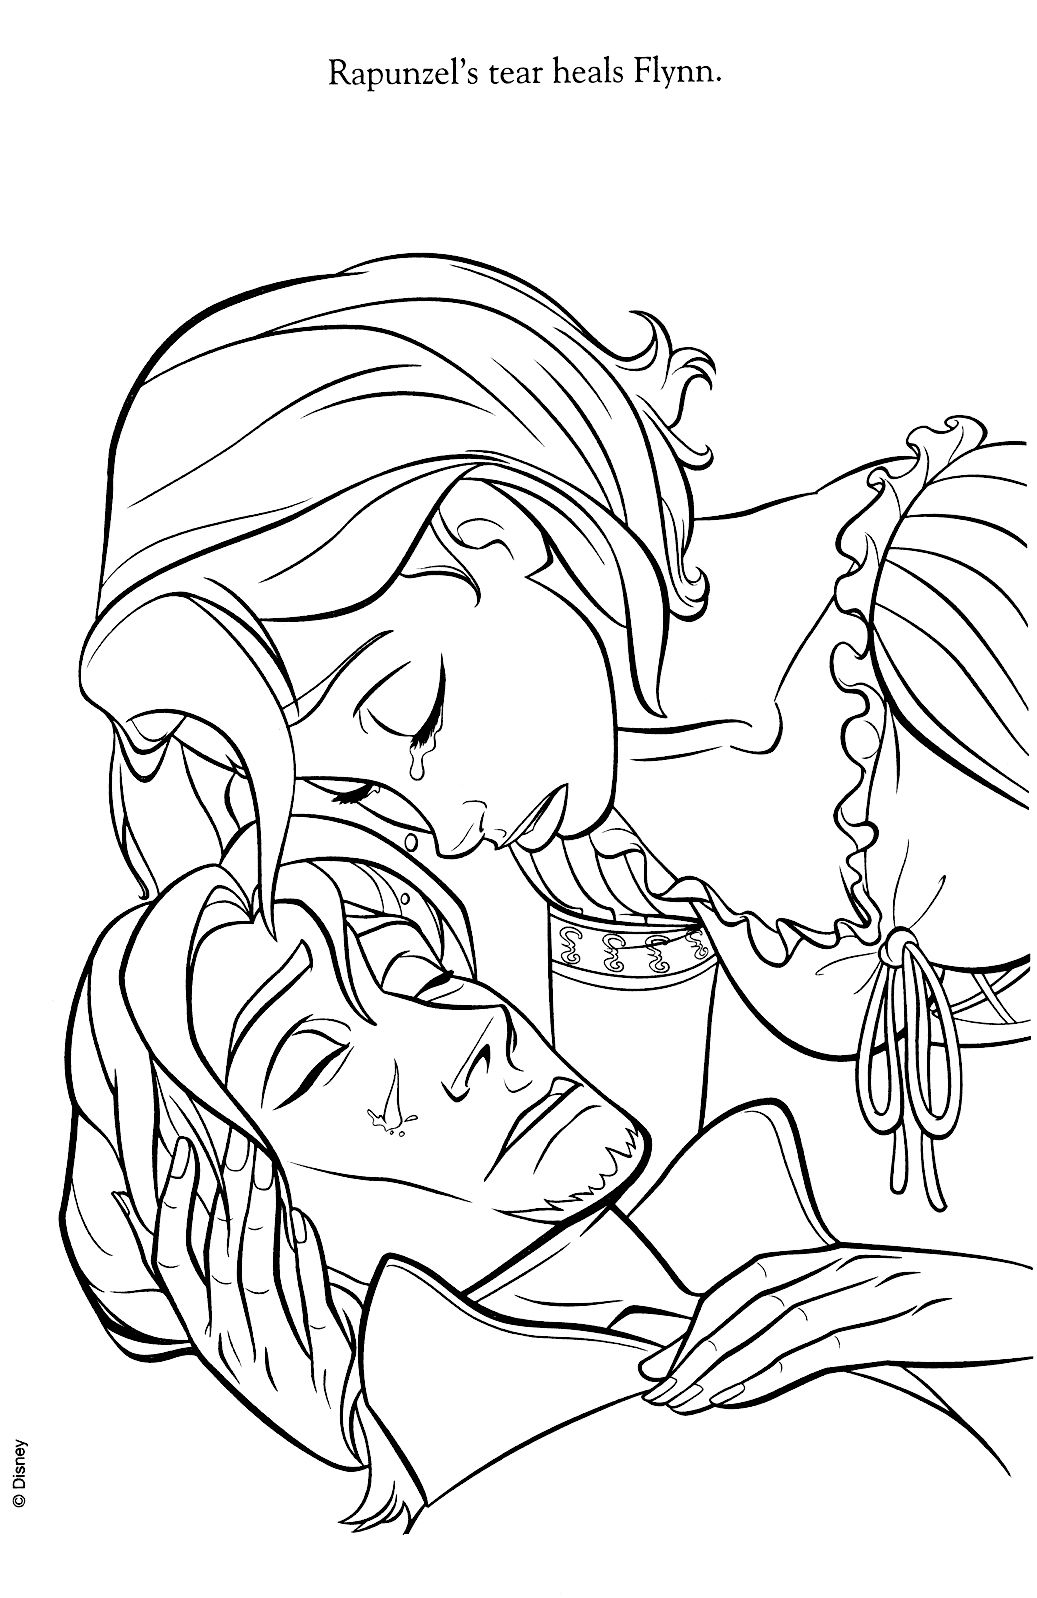 Tangled, Coloring Pages | Coloring books | Pinterest | Dibujos en ...